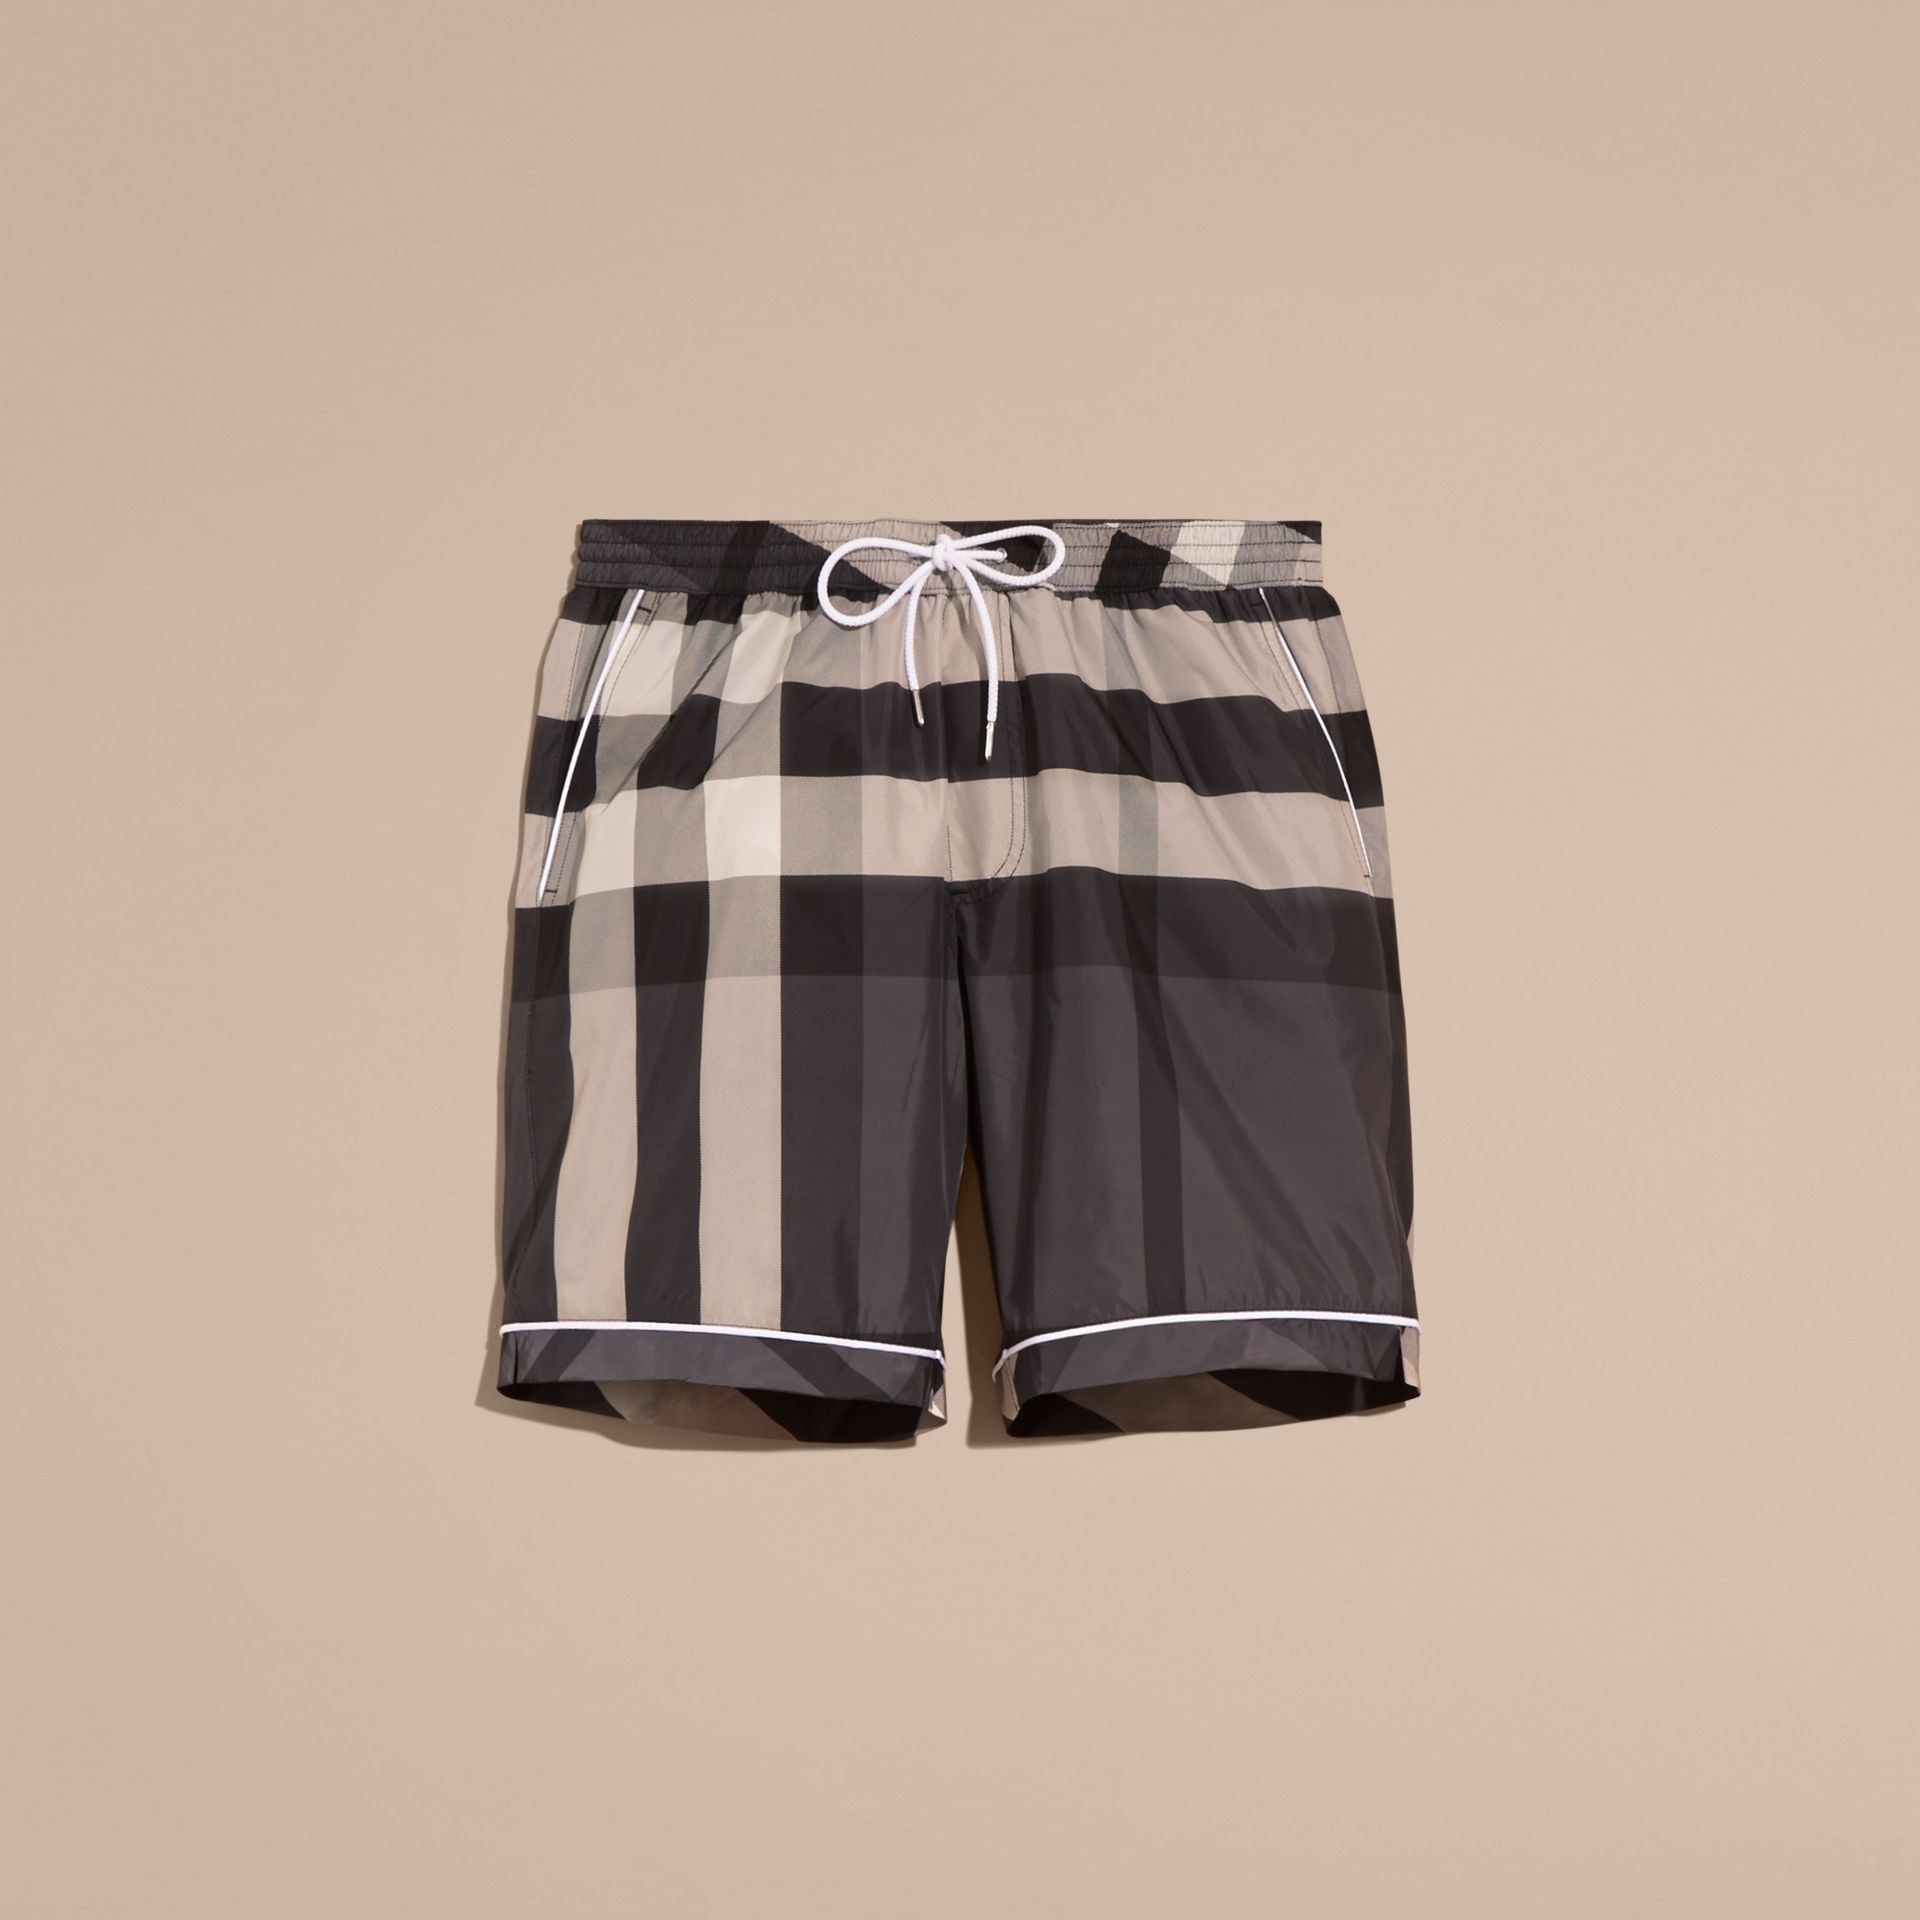 Charcoal Check Print Swim Shorts with Piping Detail Charcoal - gallery image 4